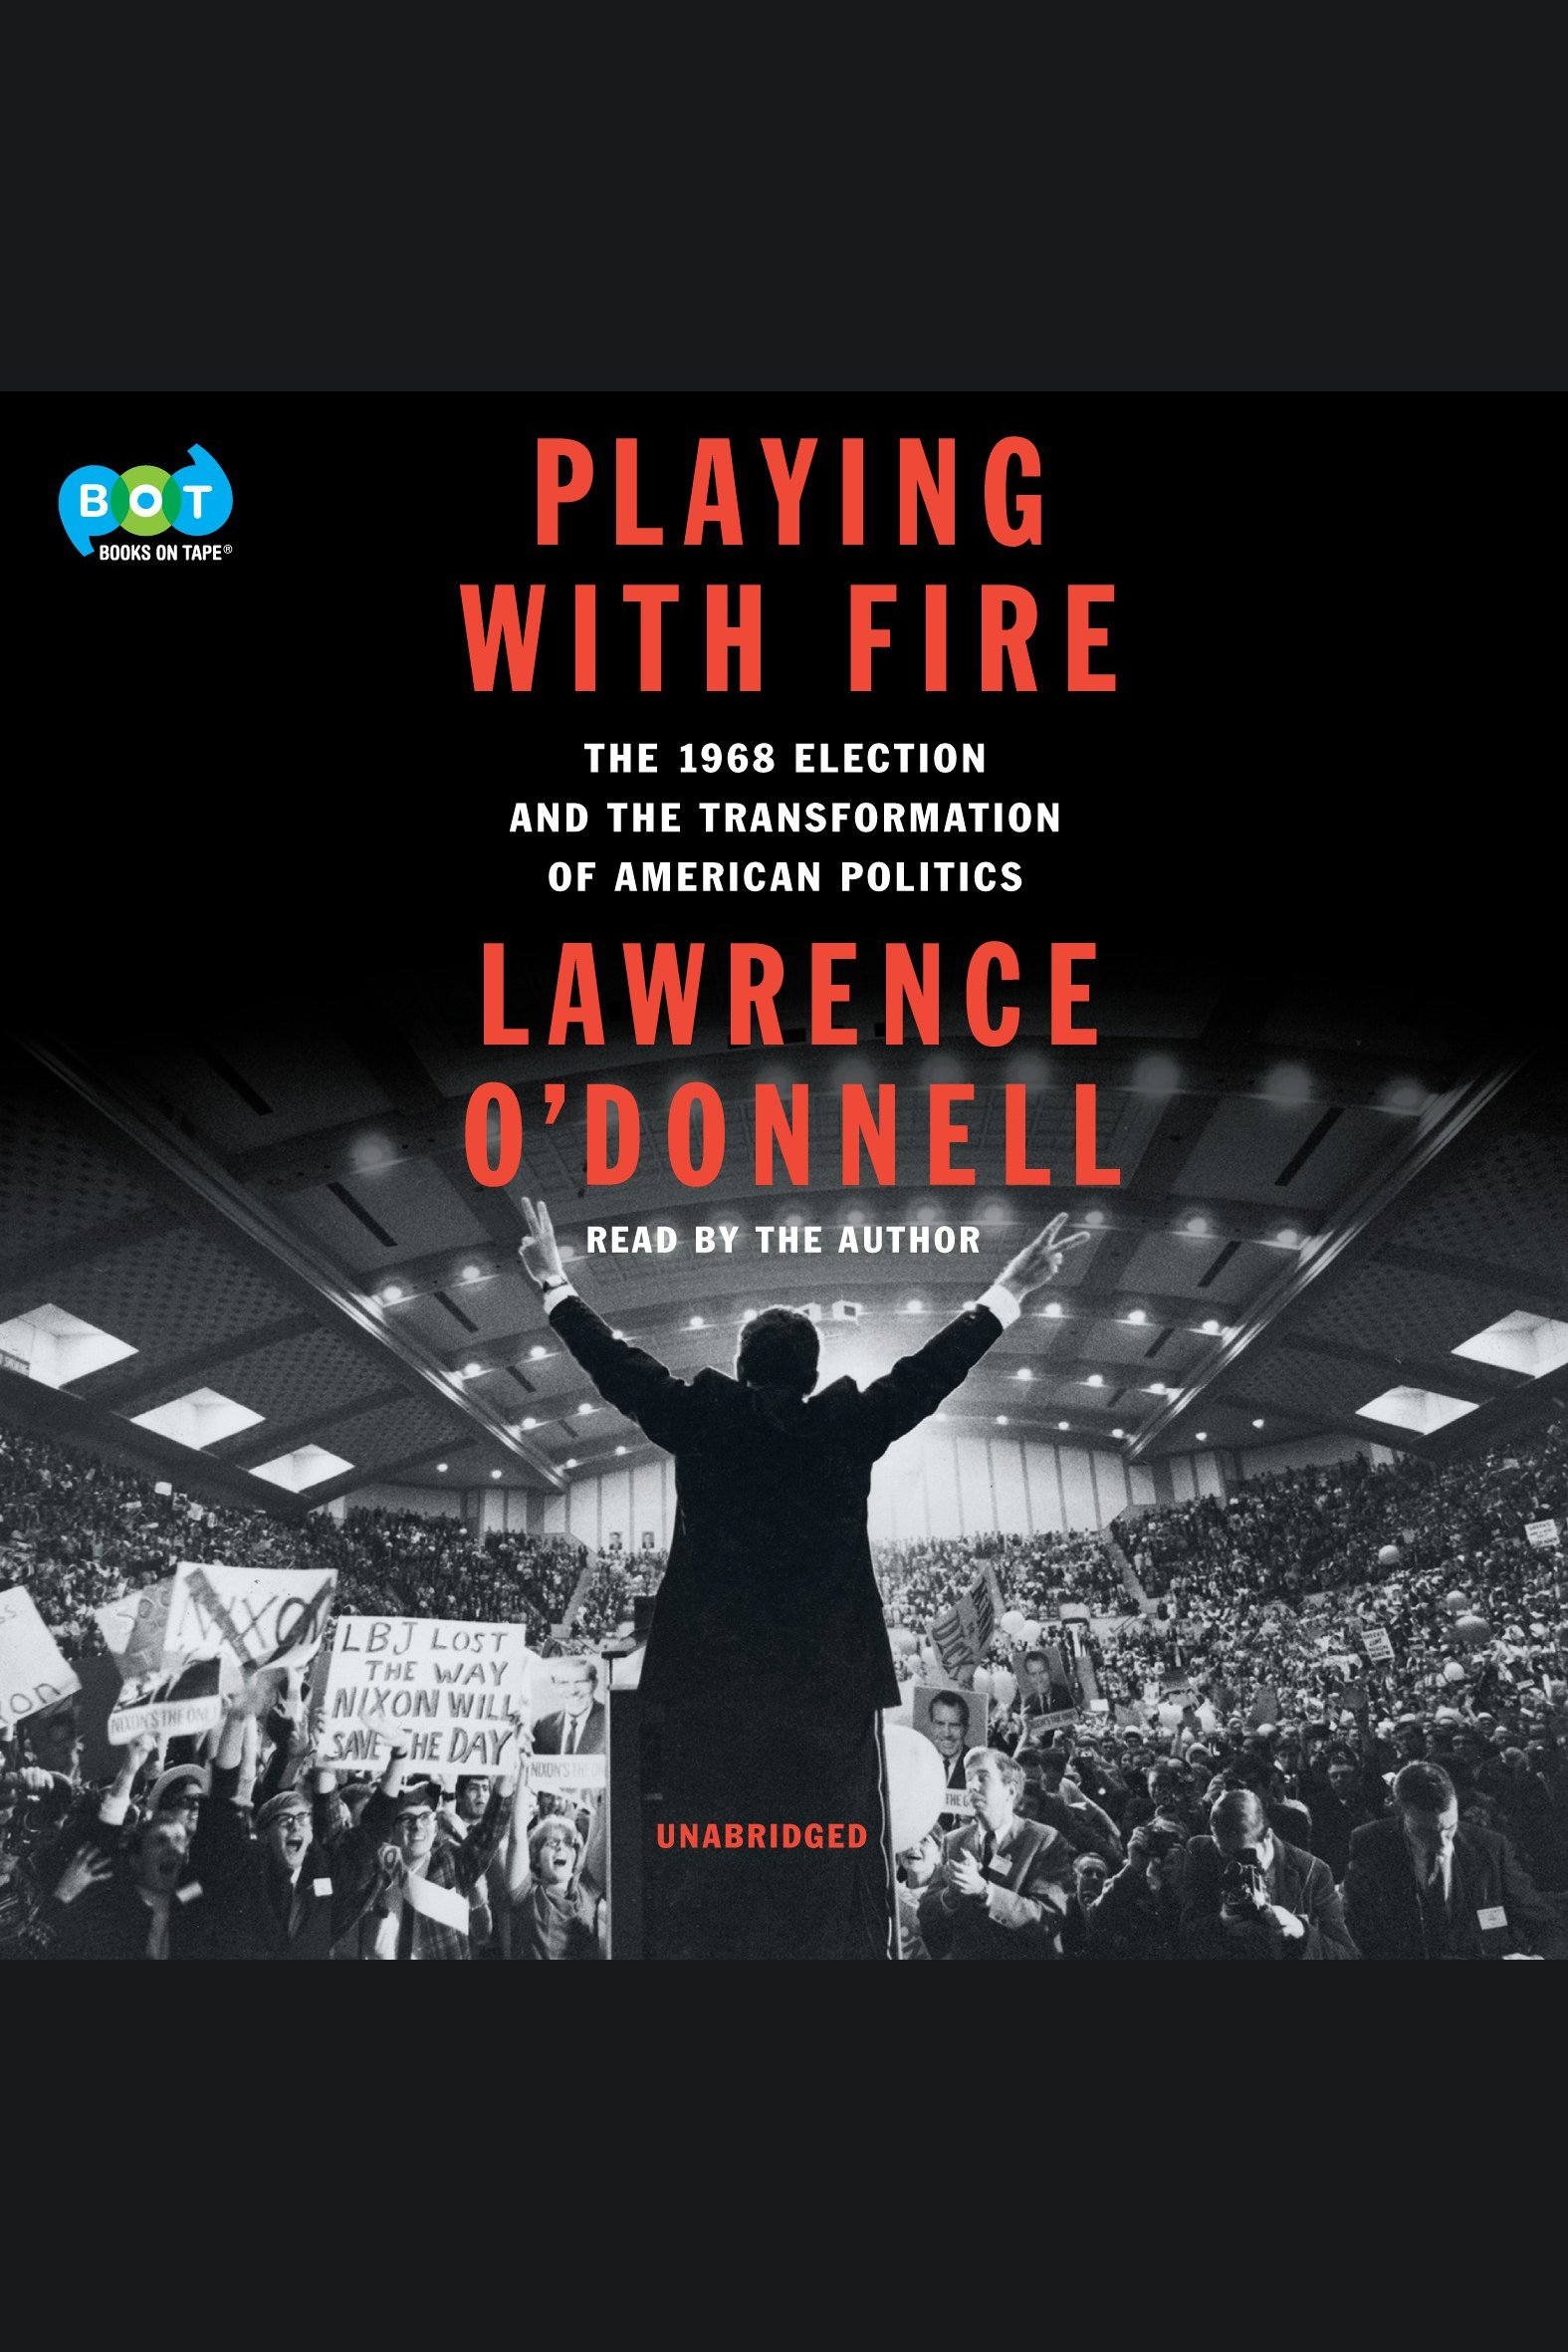 Playing with Fire [EAUDIOBOOK] The 1968 Election and the Transformation of American Politics